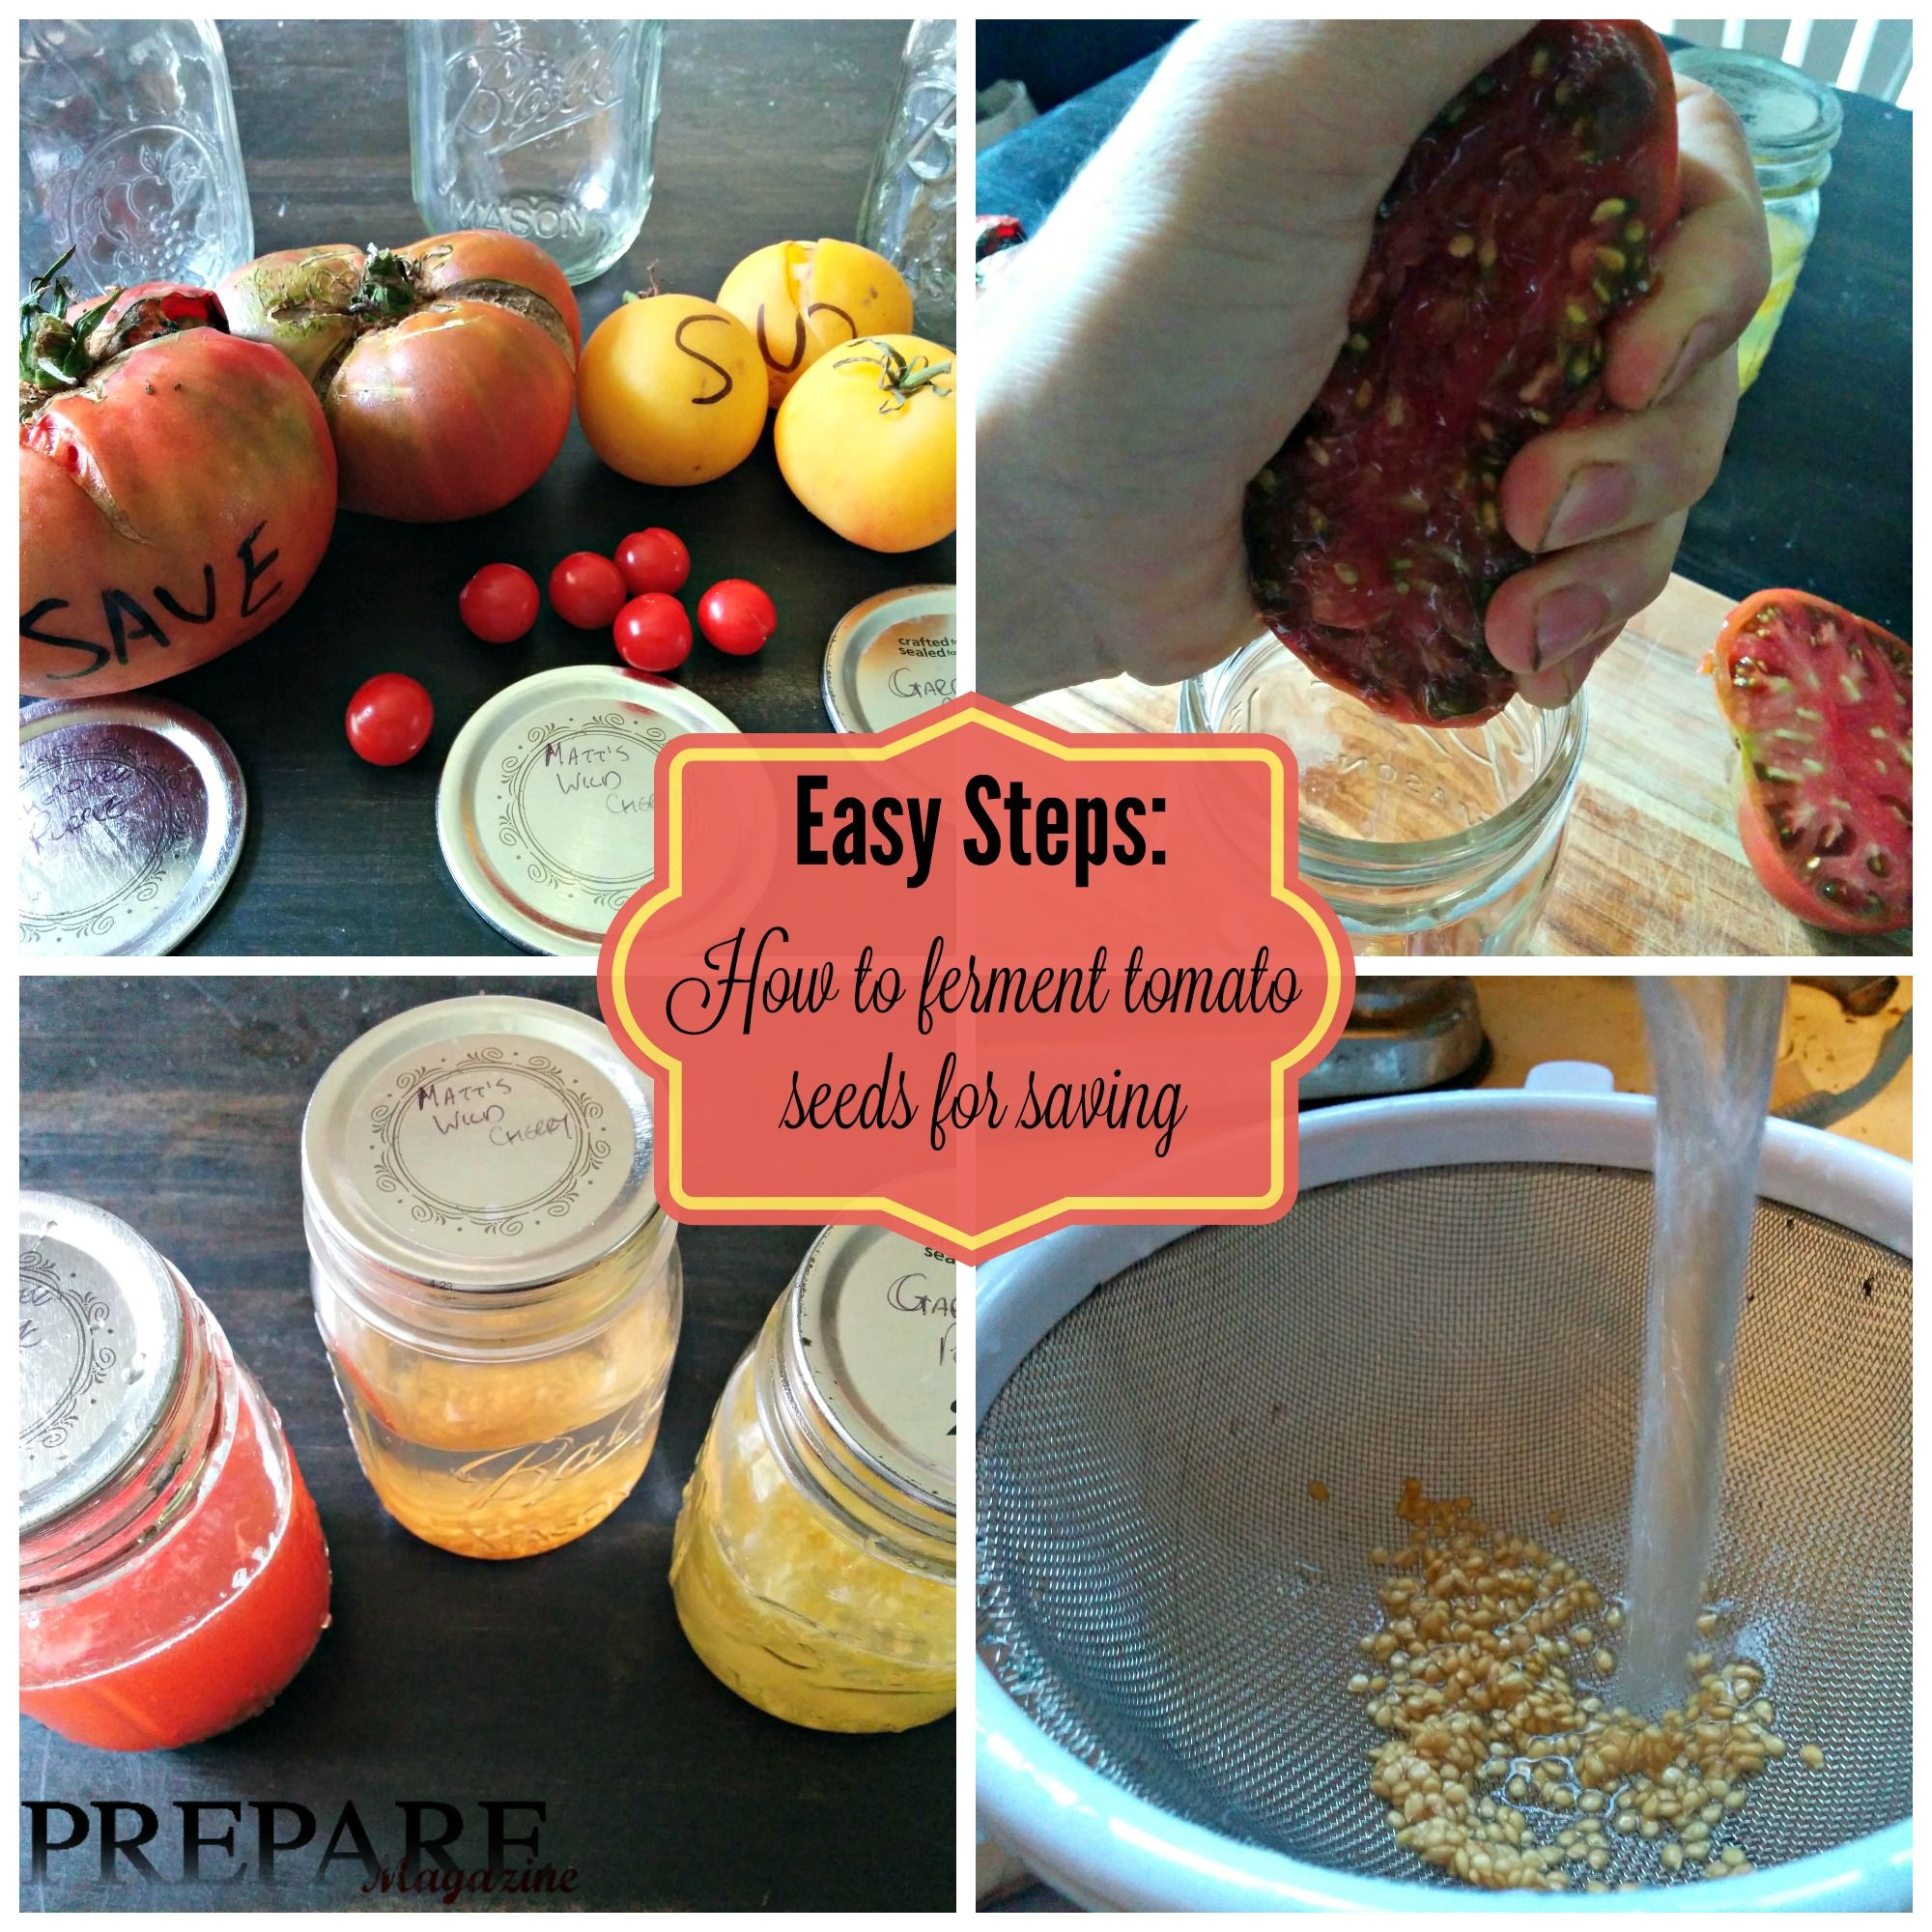 Easy steps how to ferment tomato seeds for saving lots